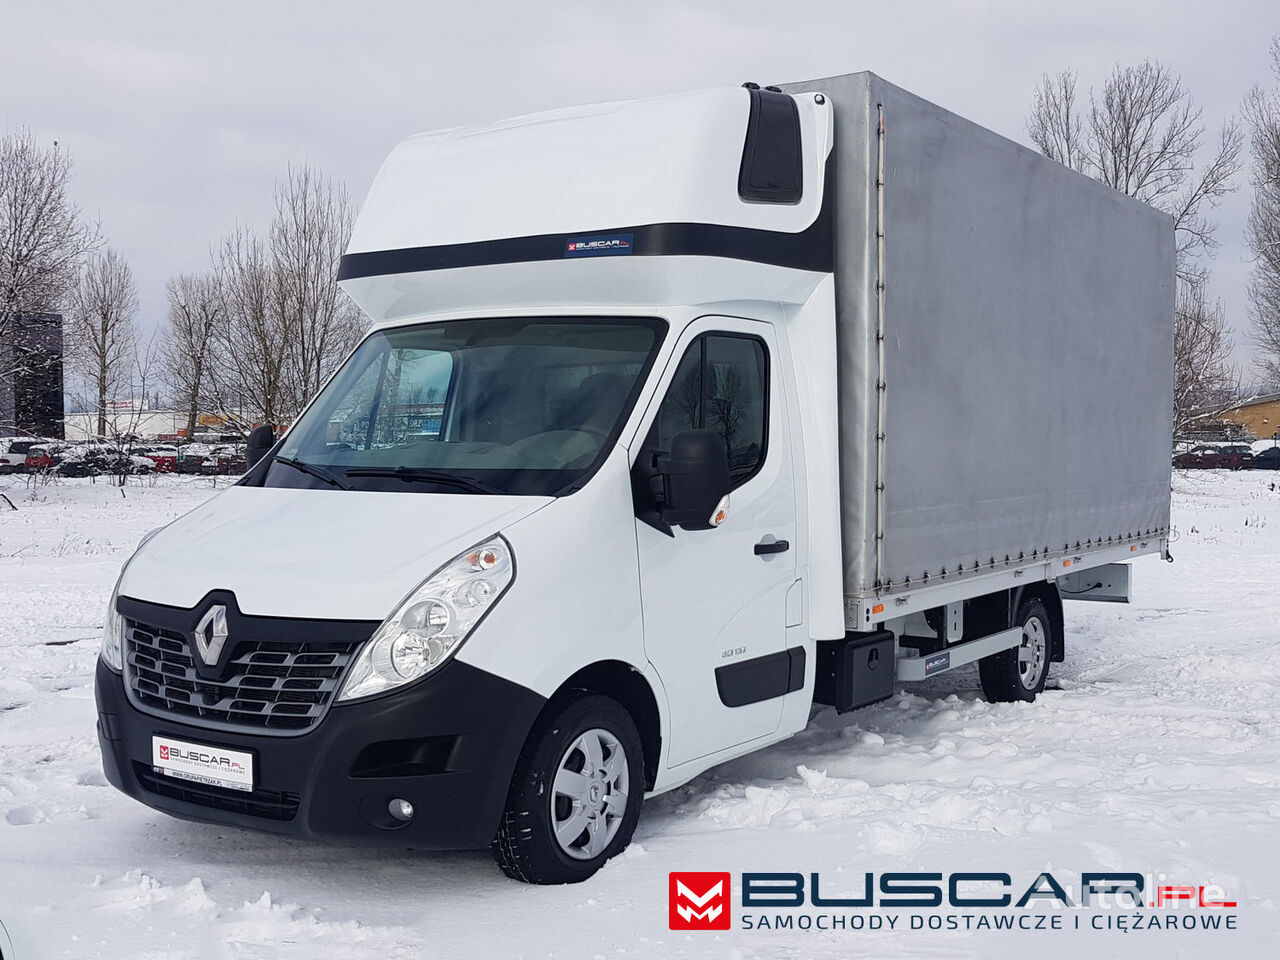 camion bâché < 3.5t RENAULT Master neuf